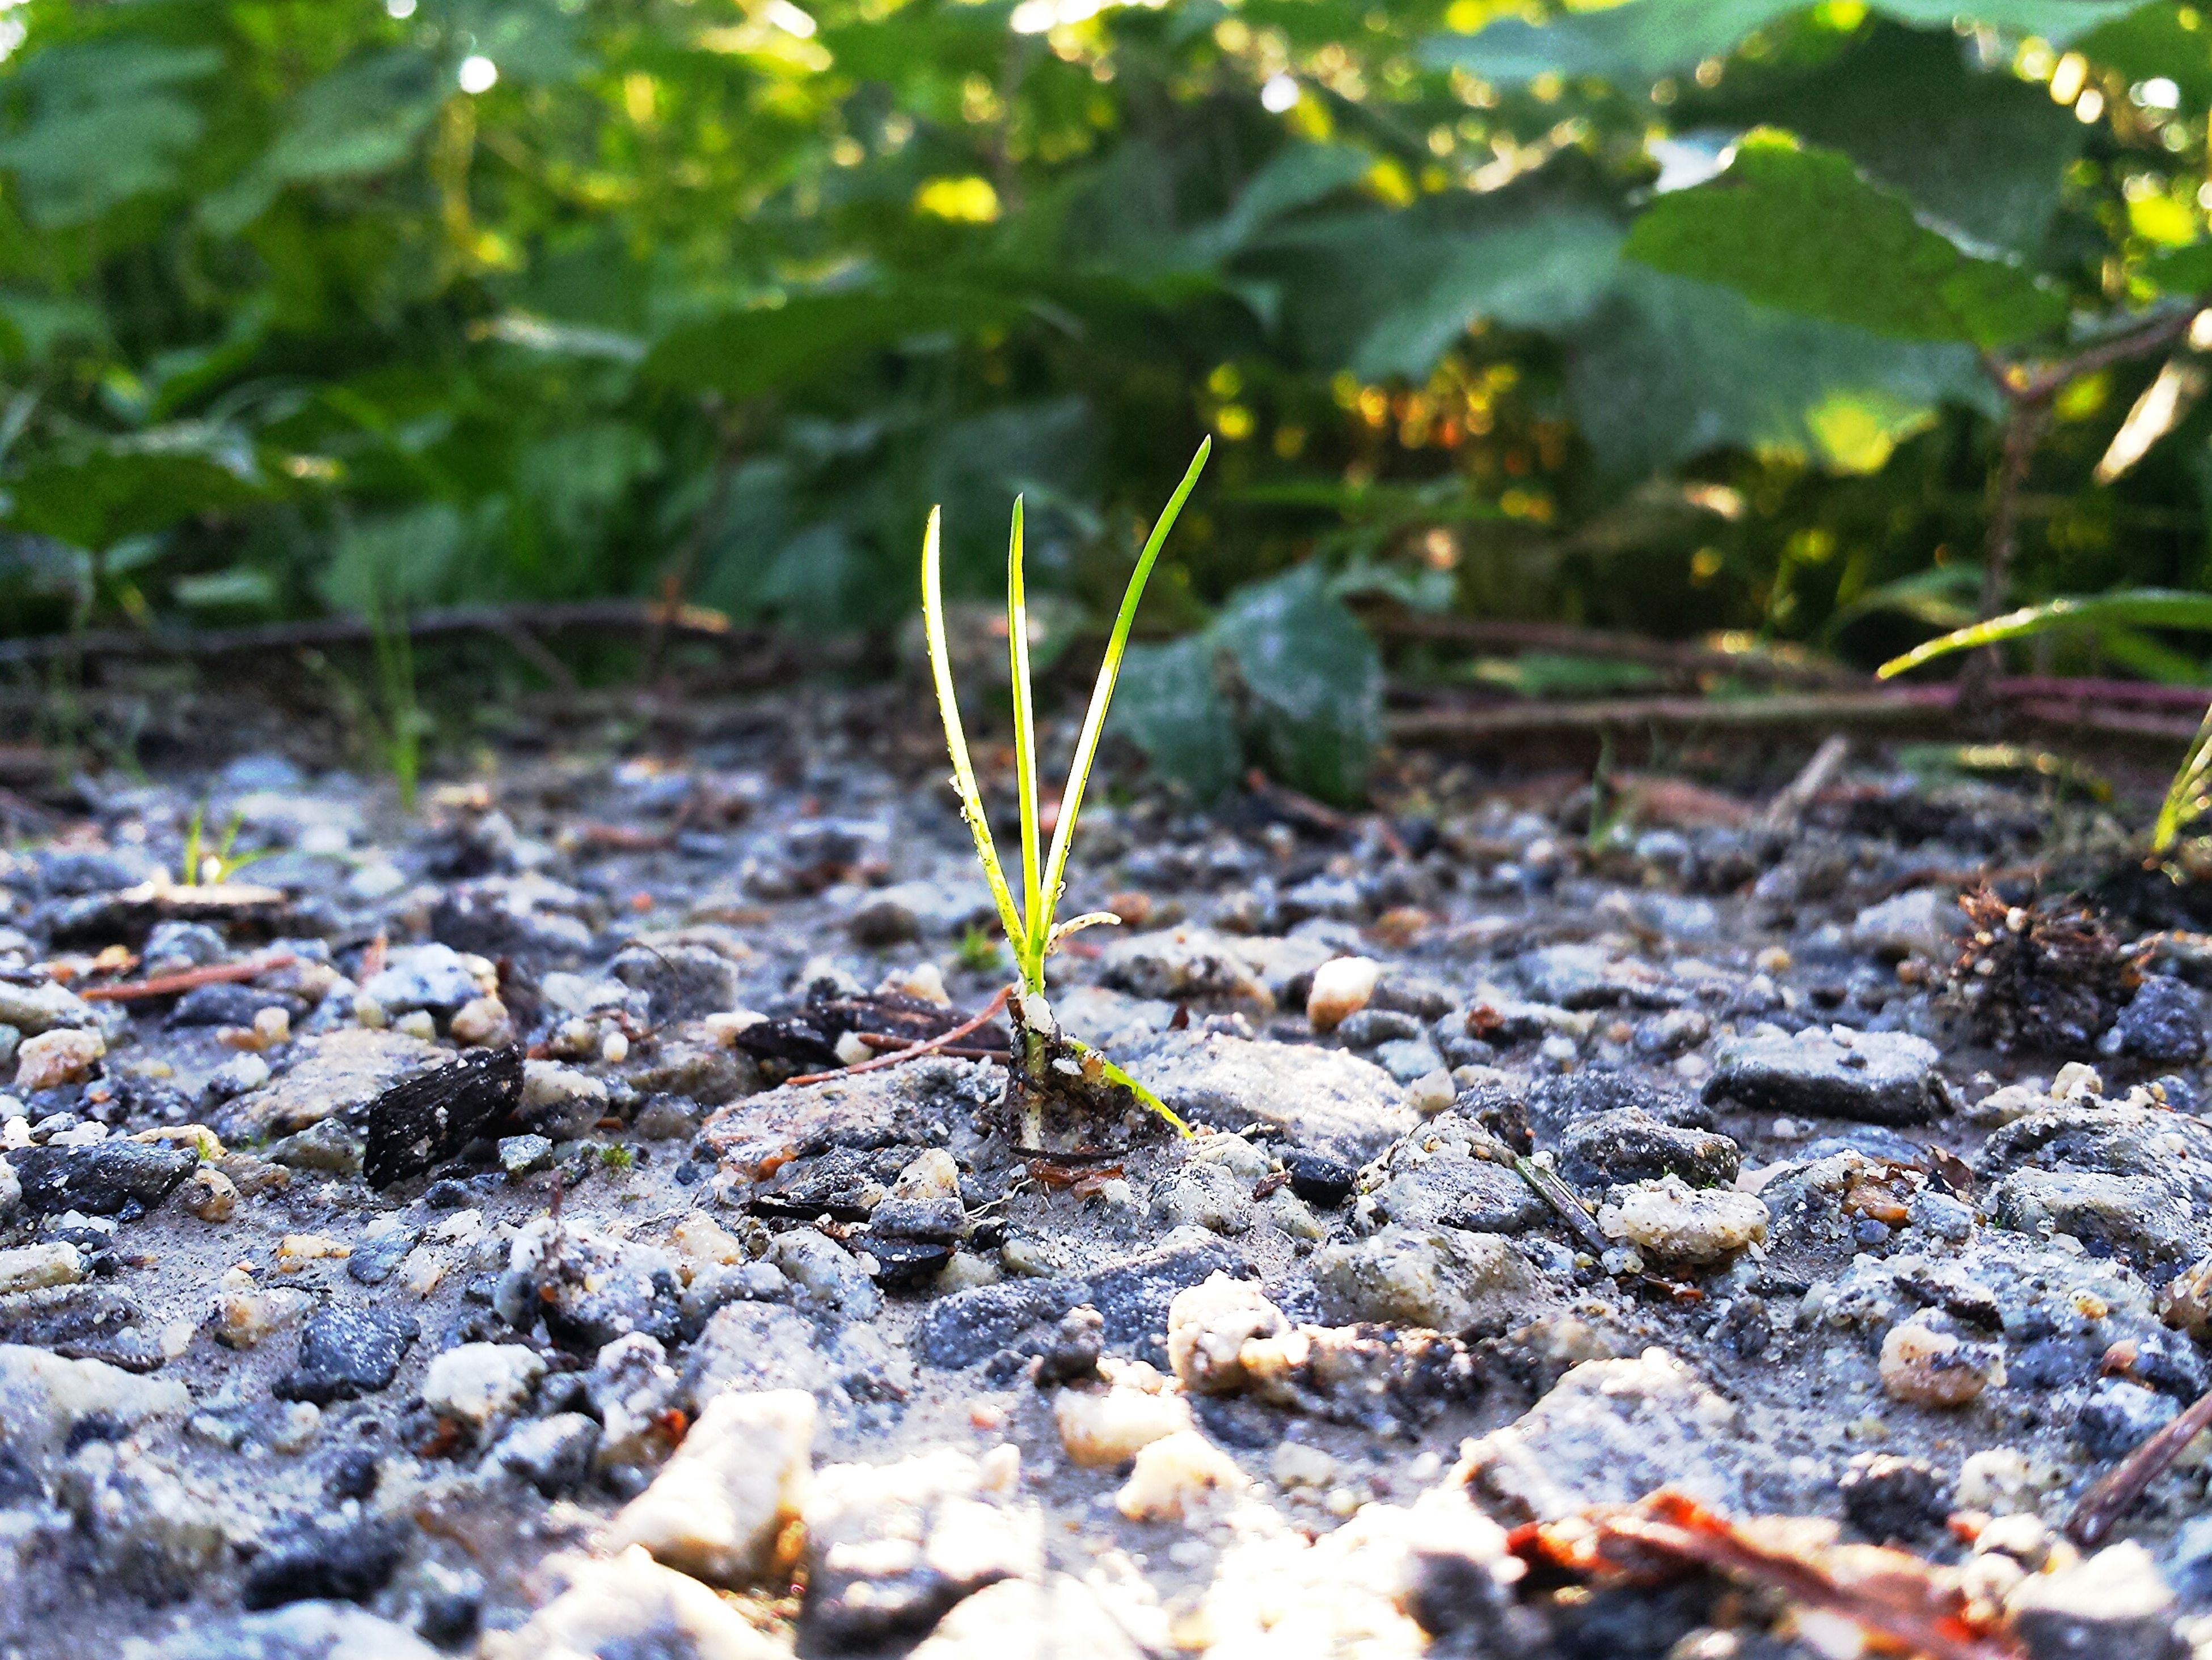 leaf, selective focus, growth, nature, plant, surface level, green color, close-up, tranquility, focus on foreground, rock - object, field, dry, day, ground, outdoors, forest, growing, beauty in nature, stone - object